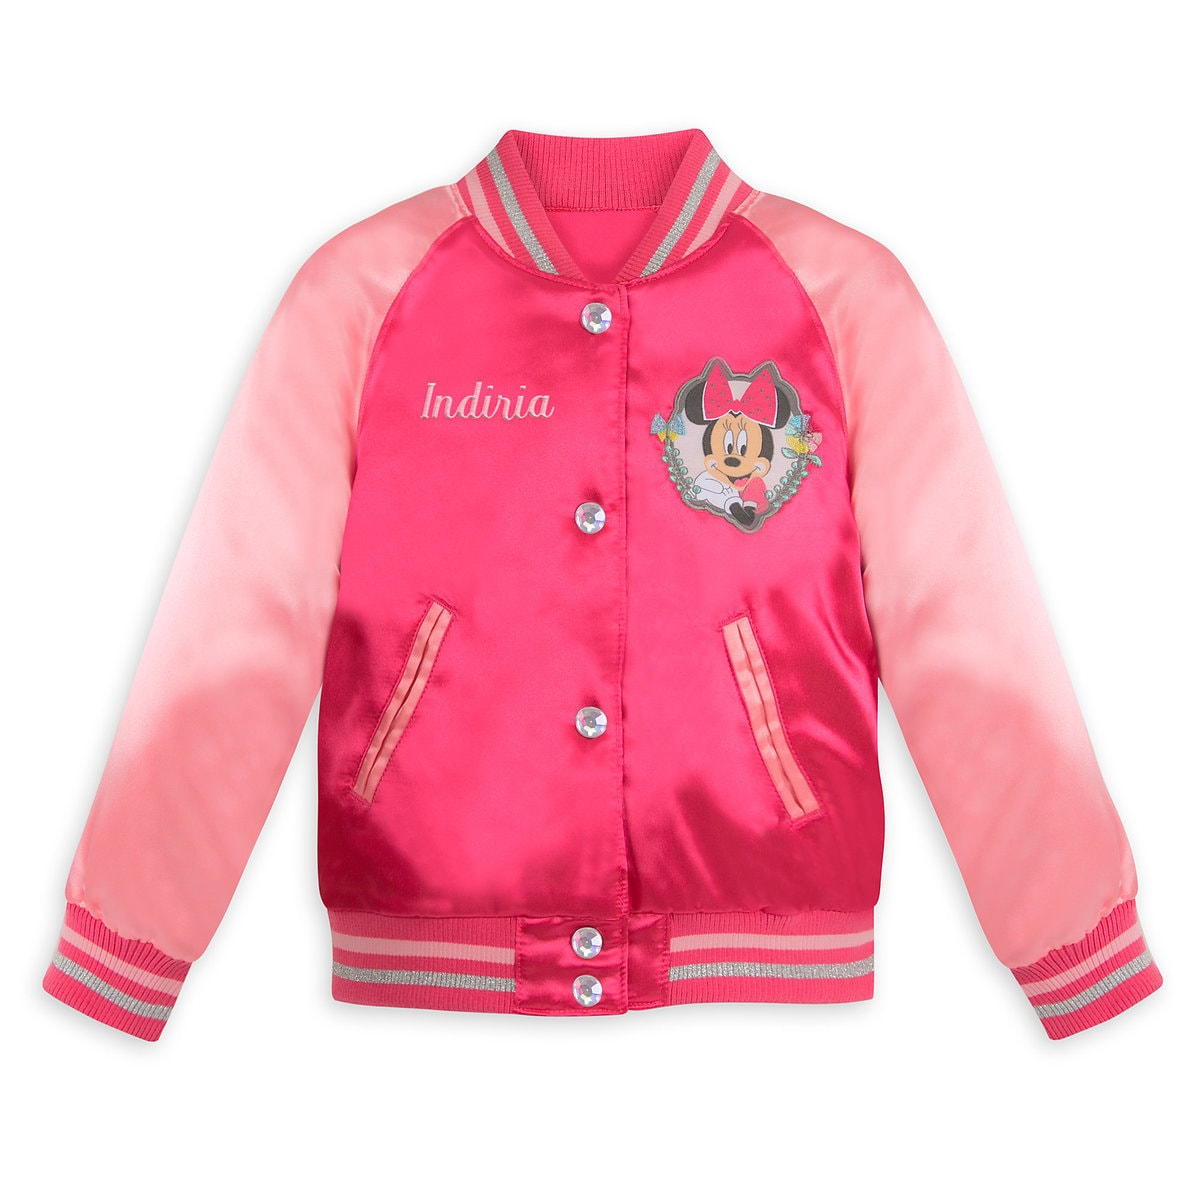 949da02ab Product Image of Minnie Mouse Varsity Jacket for Girls - Personalizable # 1